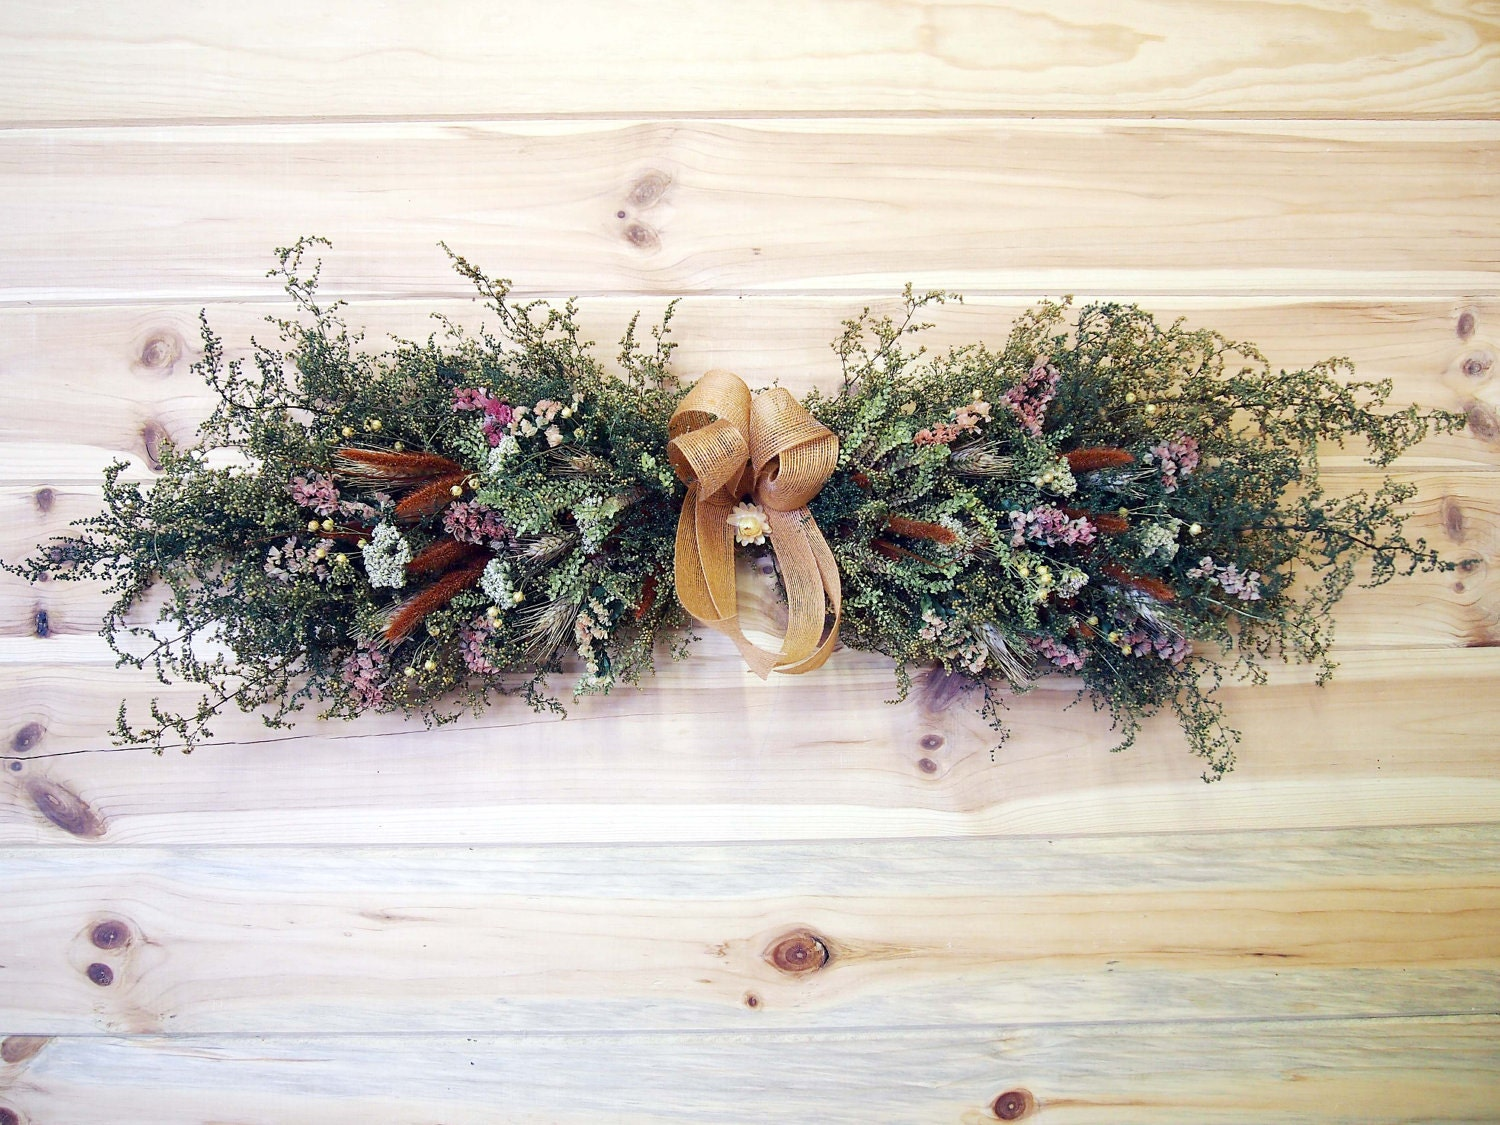 Floral Swags Wall Decor - Bing images